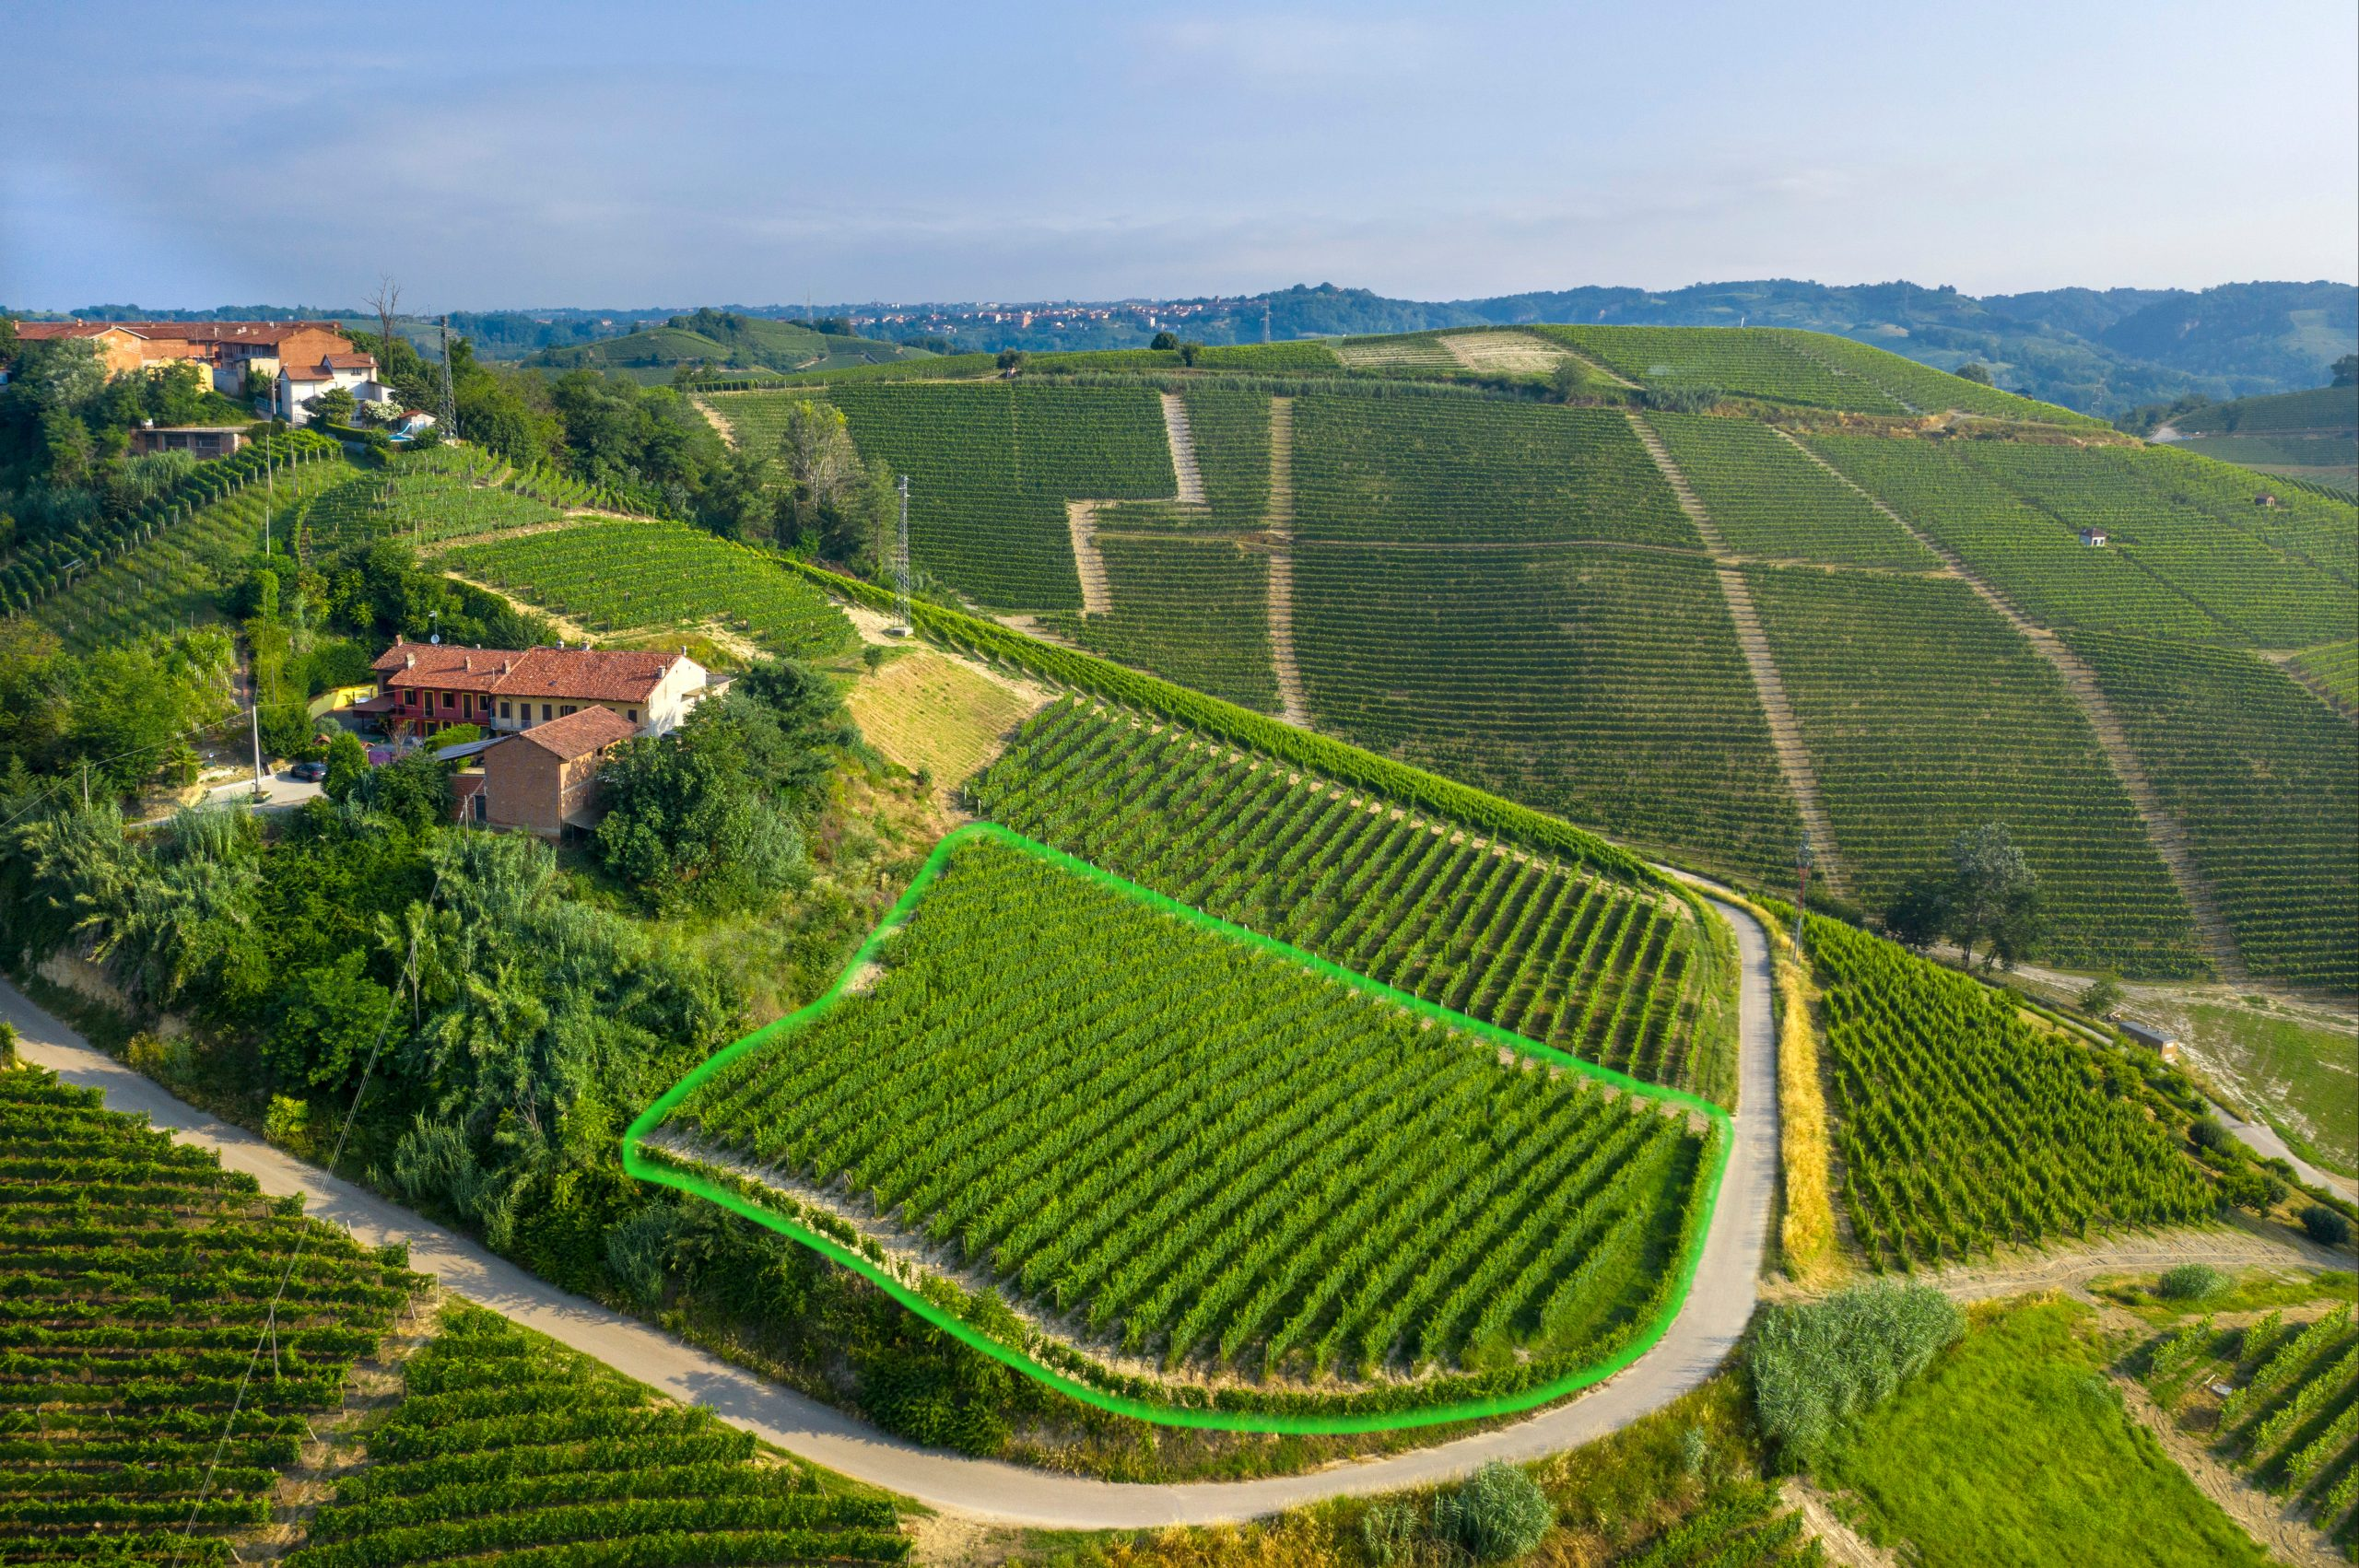 Highlighted S.S. Trinità vineyard